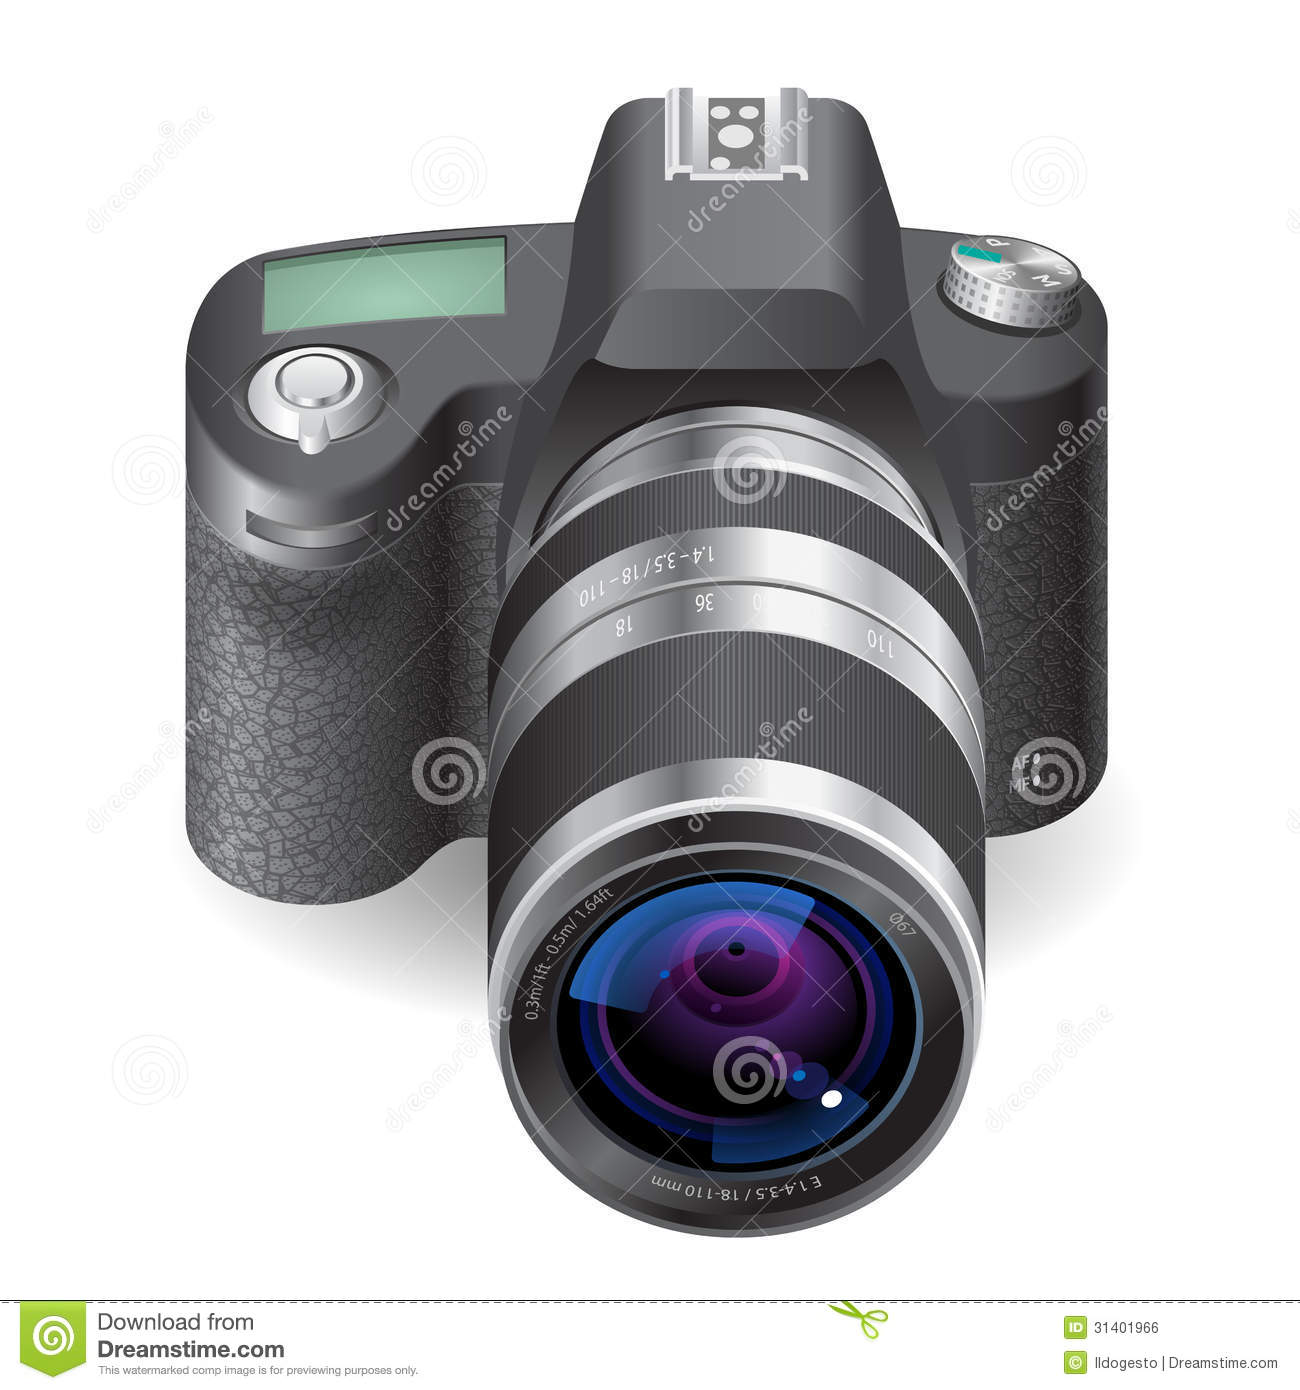 Icon For SLR Camera Royalty Free Stock Image - Image: 31401966